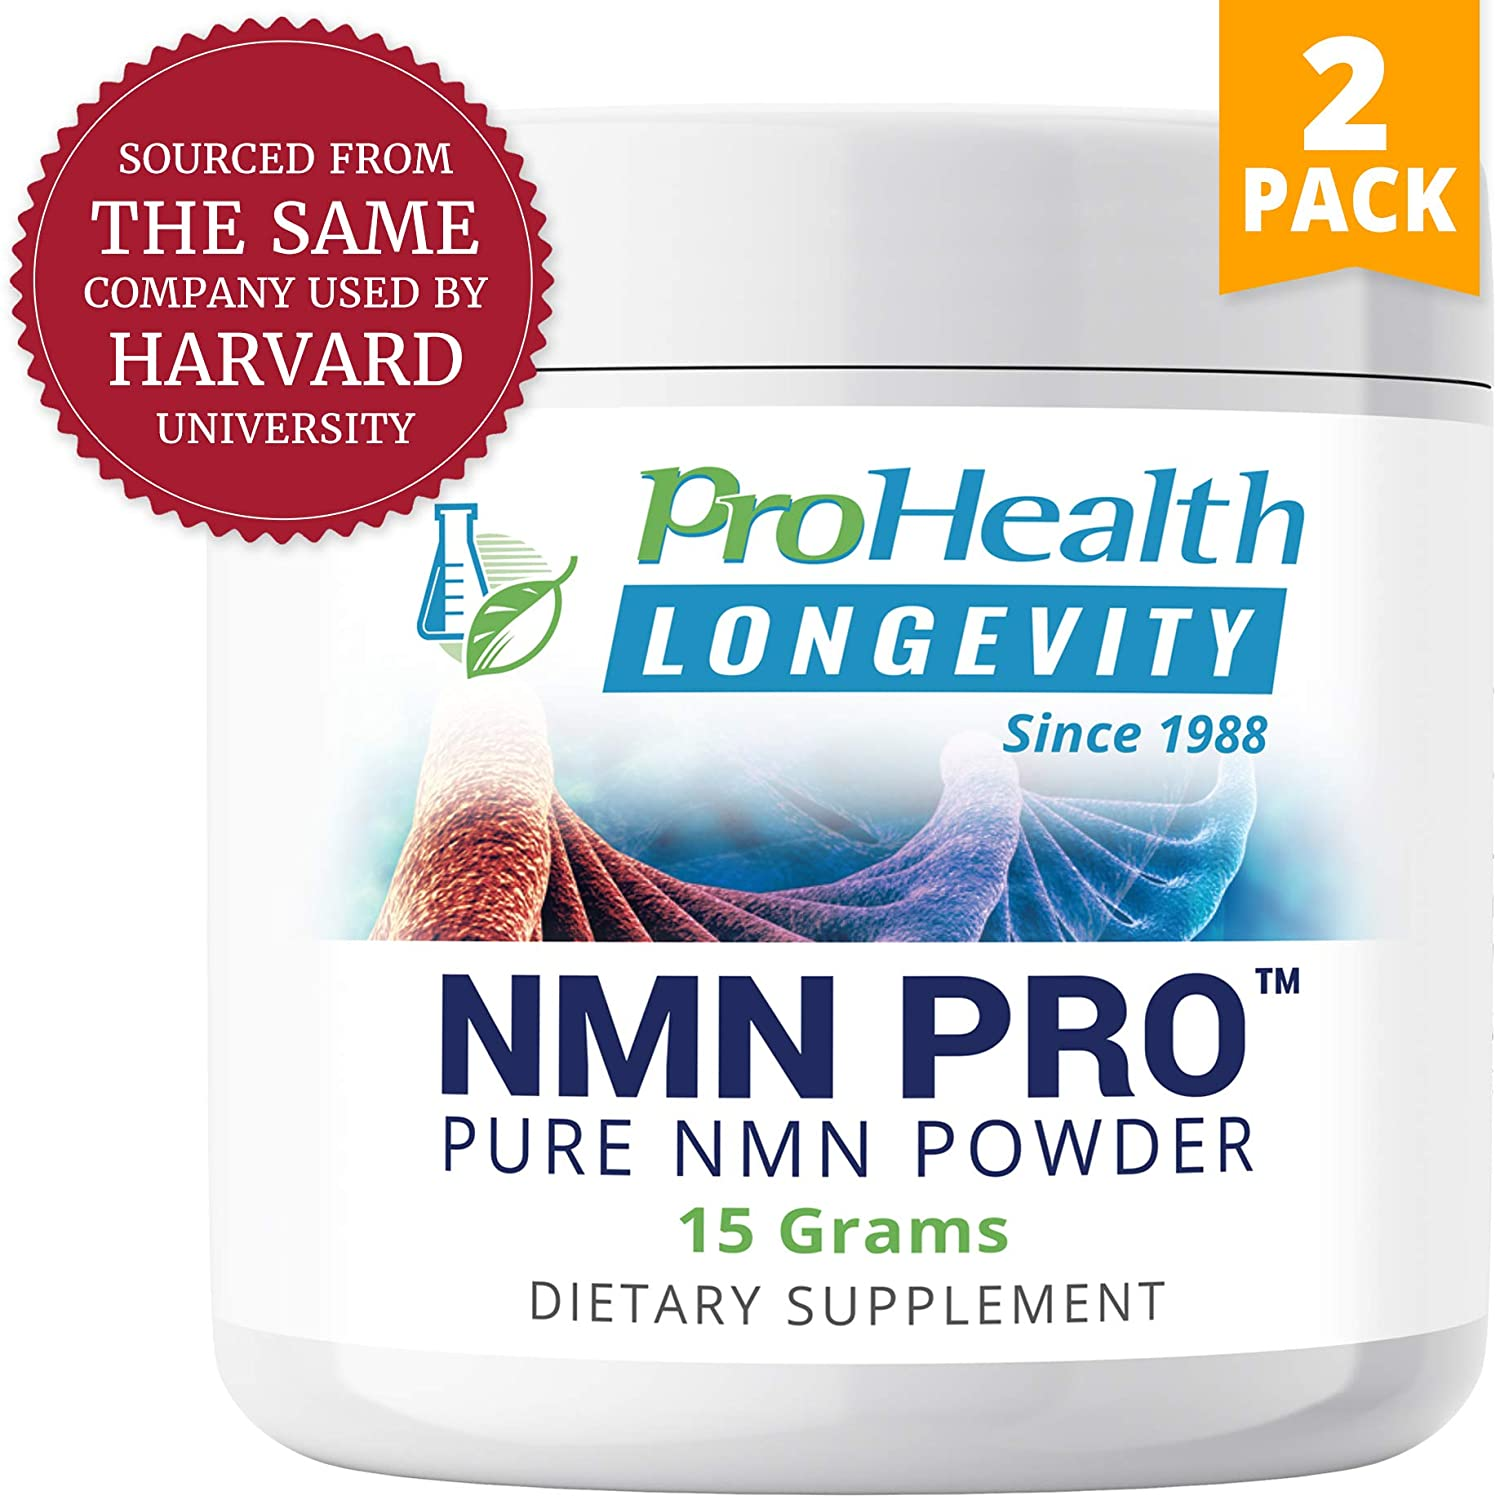 ProHealth NMN Powder 2-Pack (15 Grams per jar) Nicotinamide Mononucleotide | NAD+ Precursor | Supports Anti-Aging, Longevity and Energy | Non-GMO